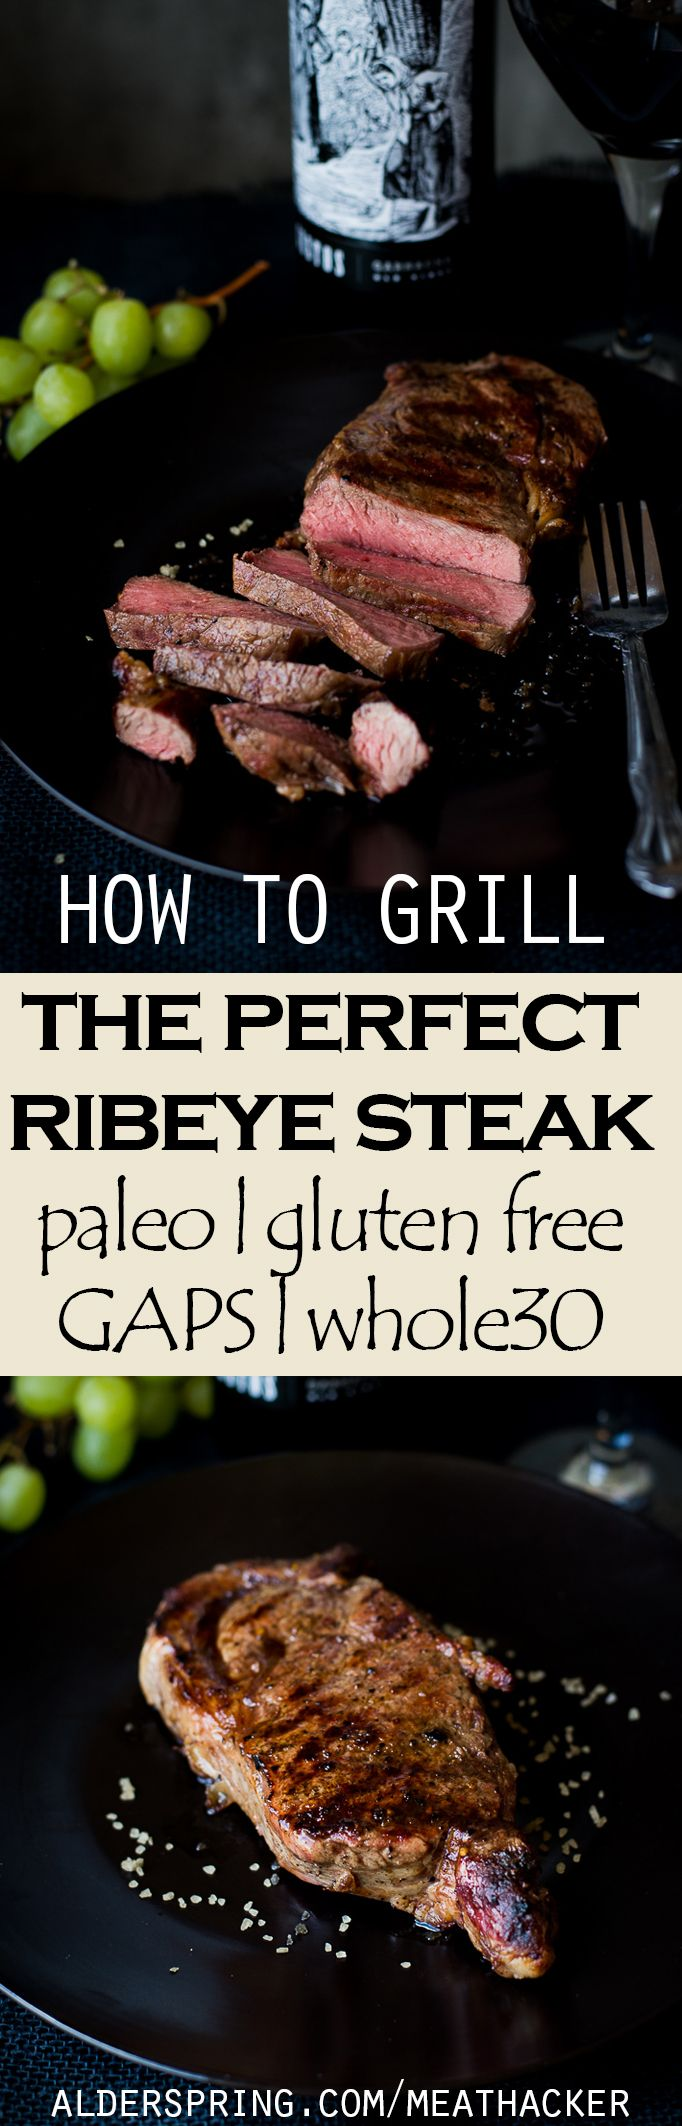 Our favorite techniques for grilling ribeye steaks to perfection. Just three ingredients let the robust flavor of a quality grass fed steak shine through: salt, pepper, and a ribeye steak. GAPs, paleo, gluten free, whole30.